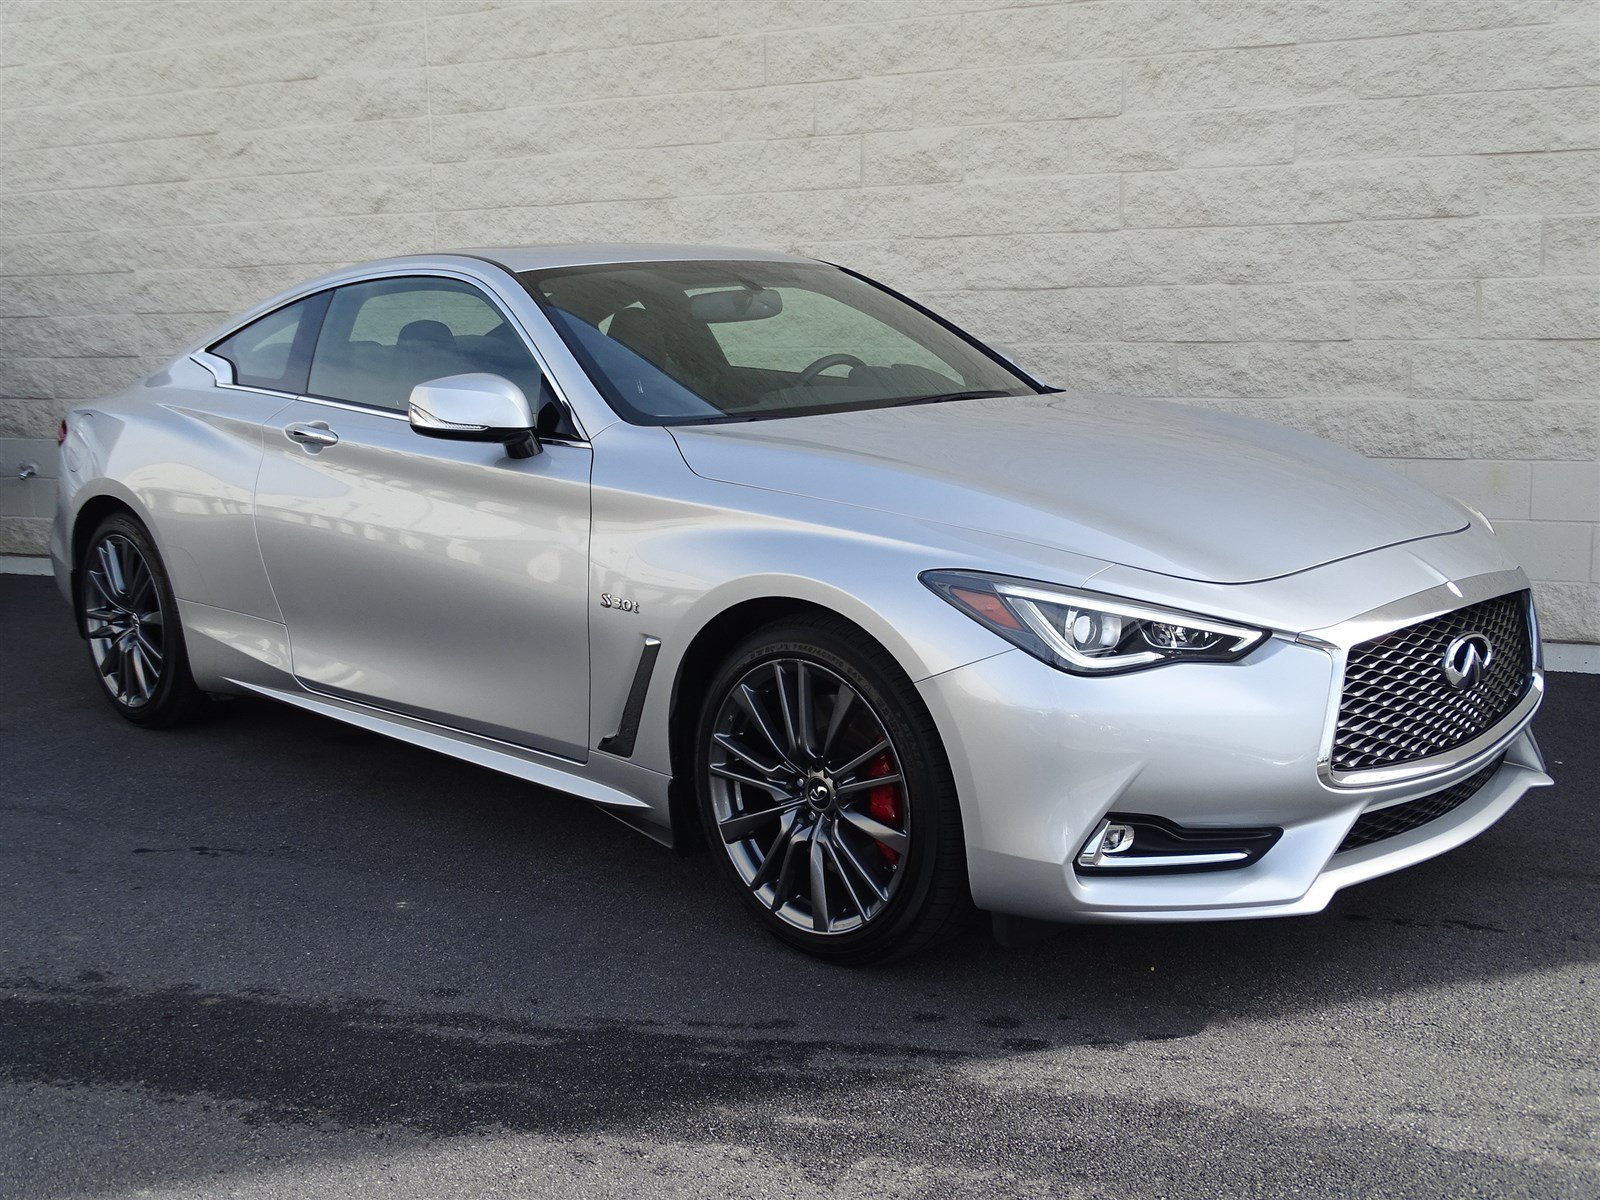 pre owned 2017 infiniti q60 red sport 400 2dr car in union city rh toyotaofunioncity com